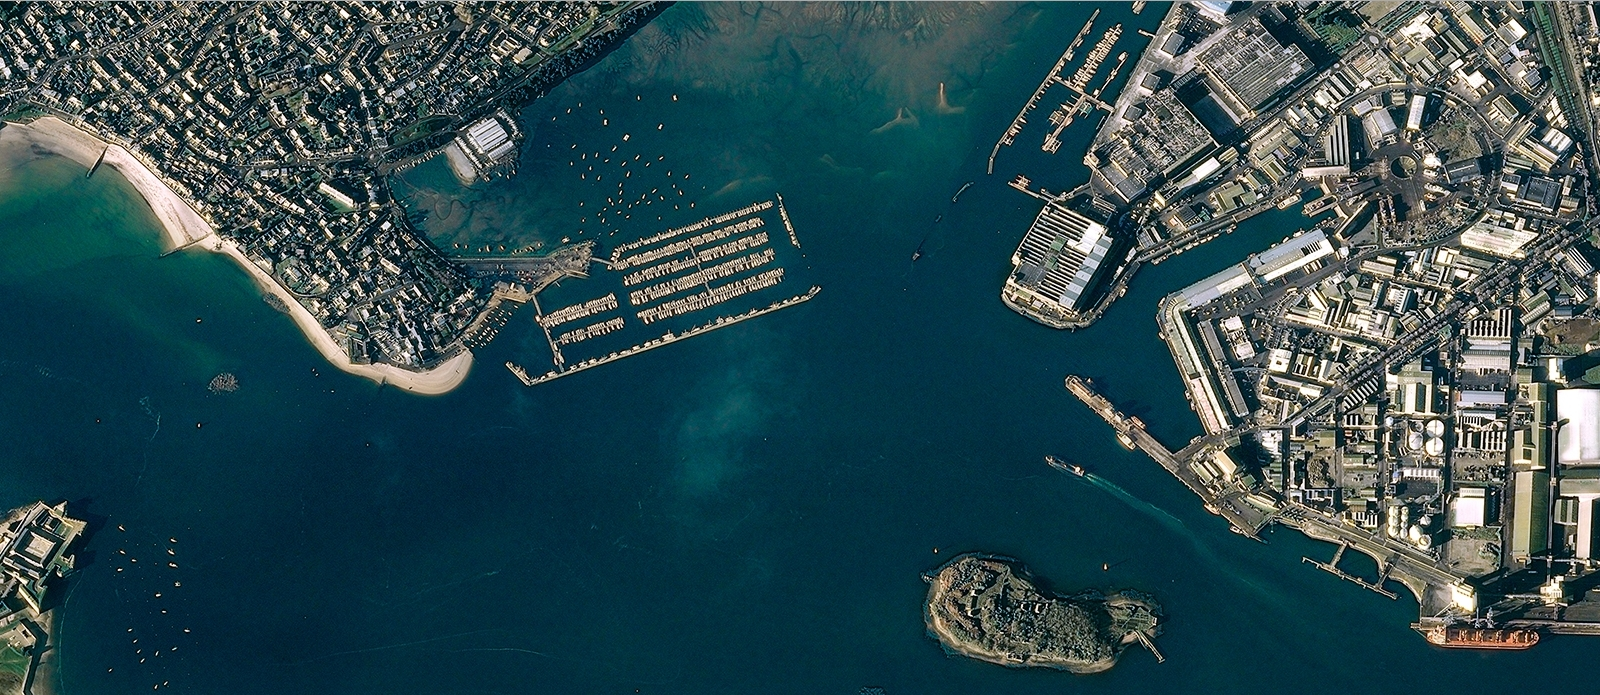 Lorient France  city pictures gallery : ... by pléiades 1b was on december 5 2012 of lorient france cnes